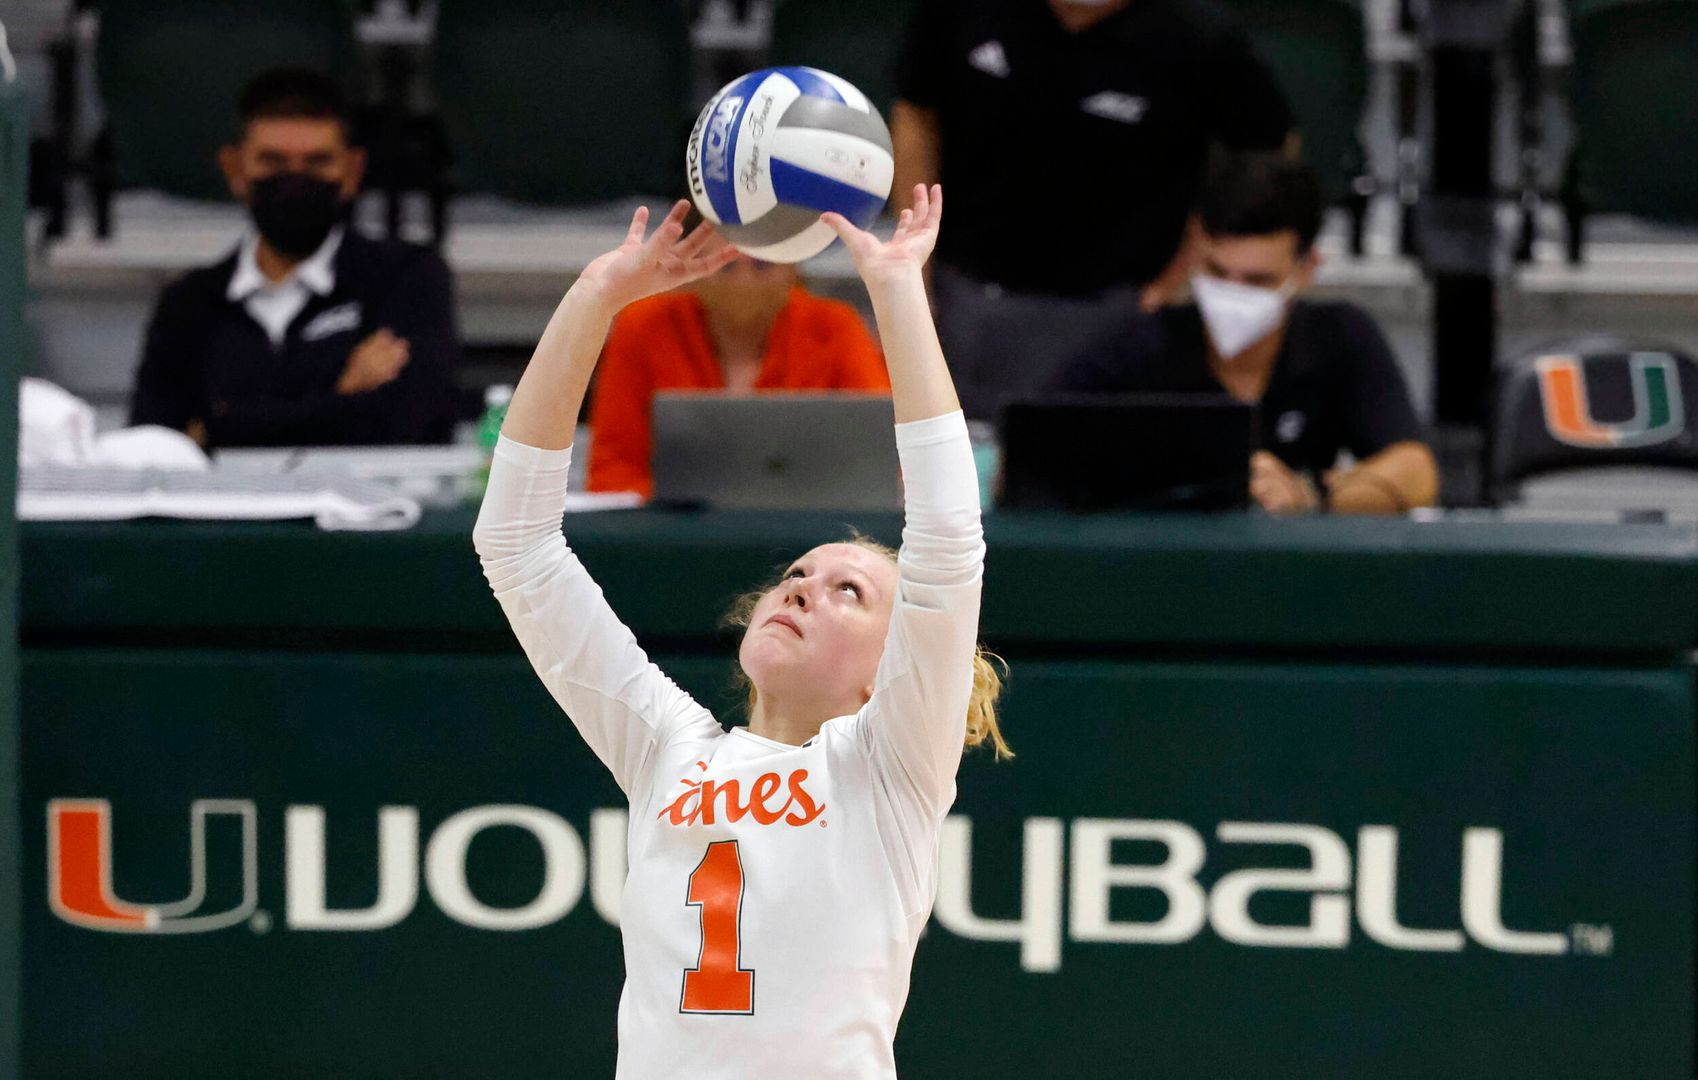 Canes Win Fourth Consecutive Match To Open Season